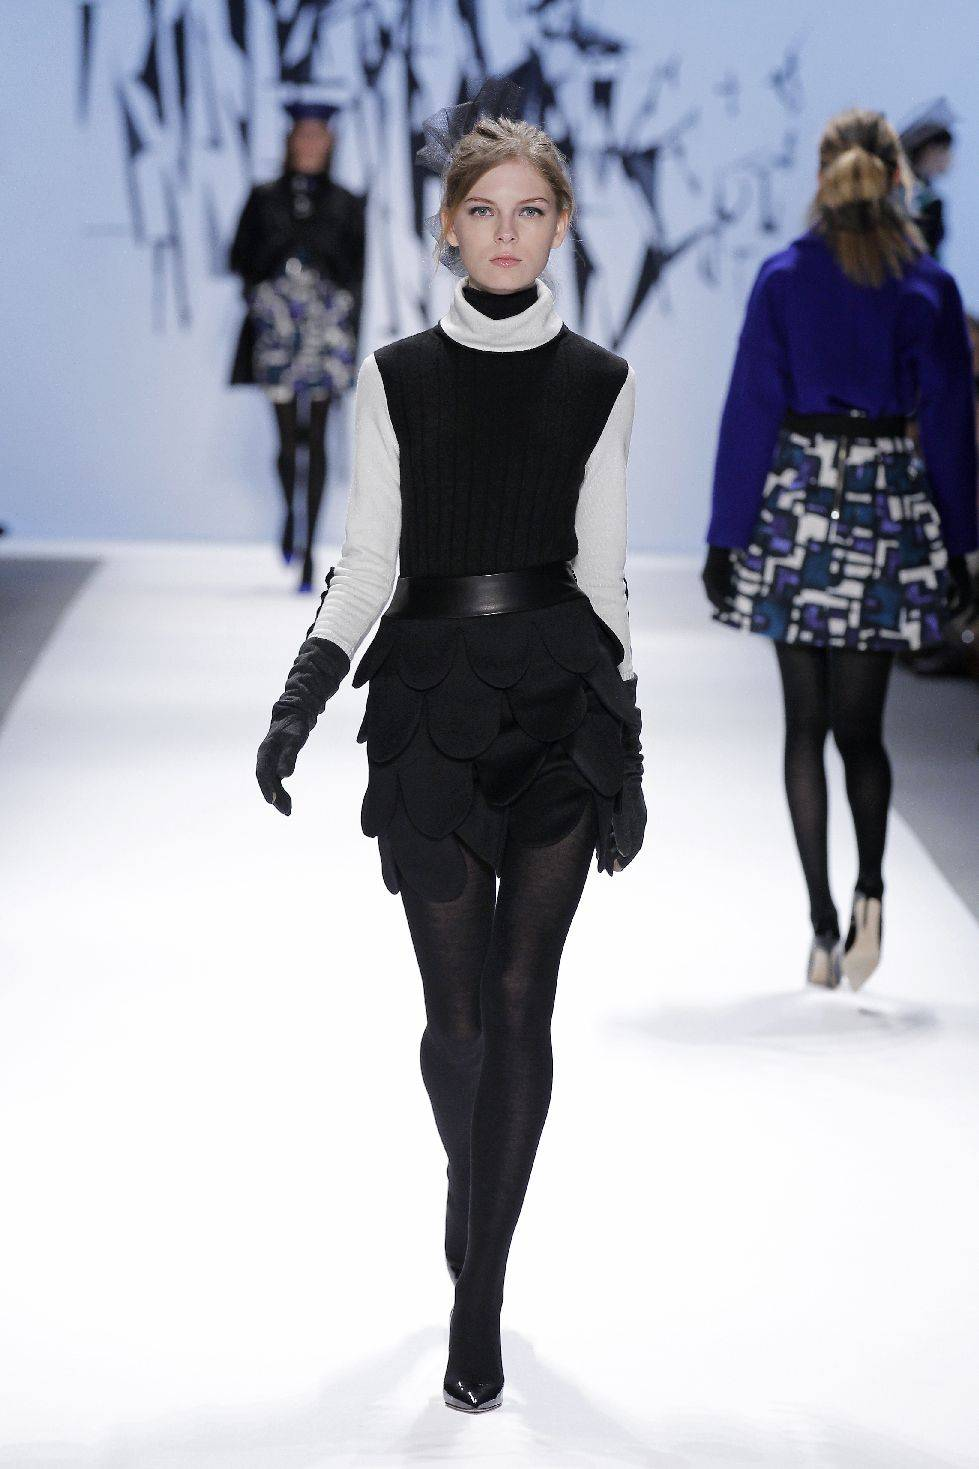 FW12 MILLY FW12 NEW YORK 2/15/2012